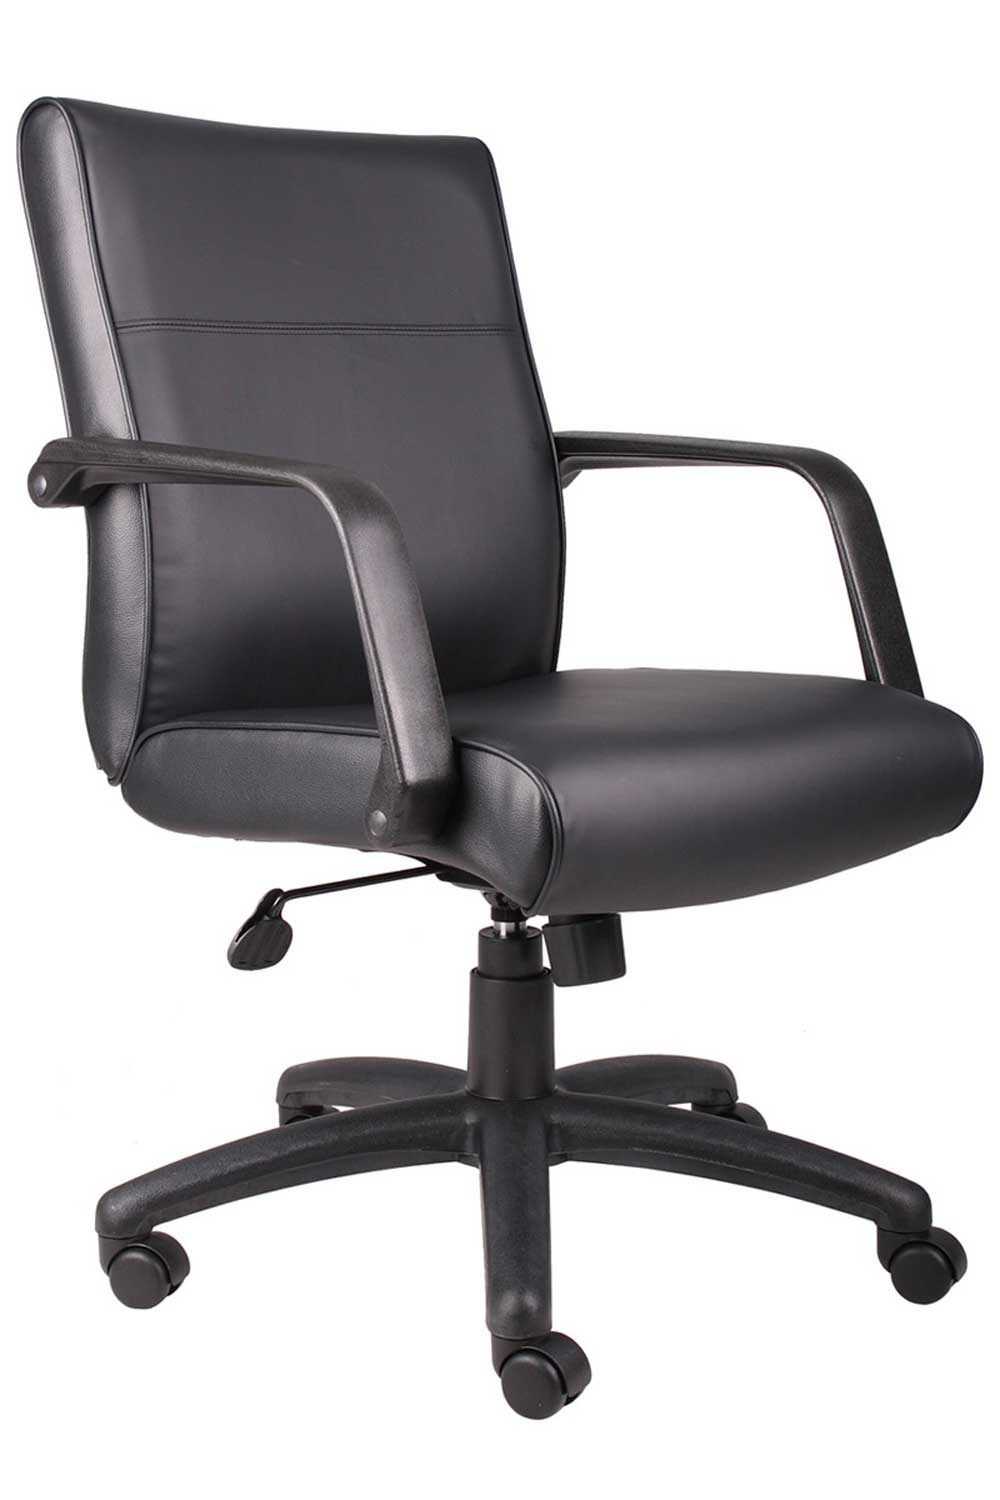 Outstanding Swivel Office Chair To Ease Life In The Office Gmtry Best Dining Table And Chair Ideas Images Gmtryco